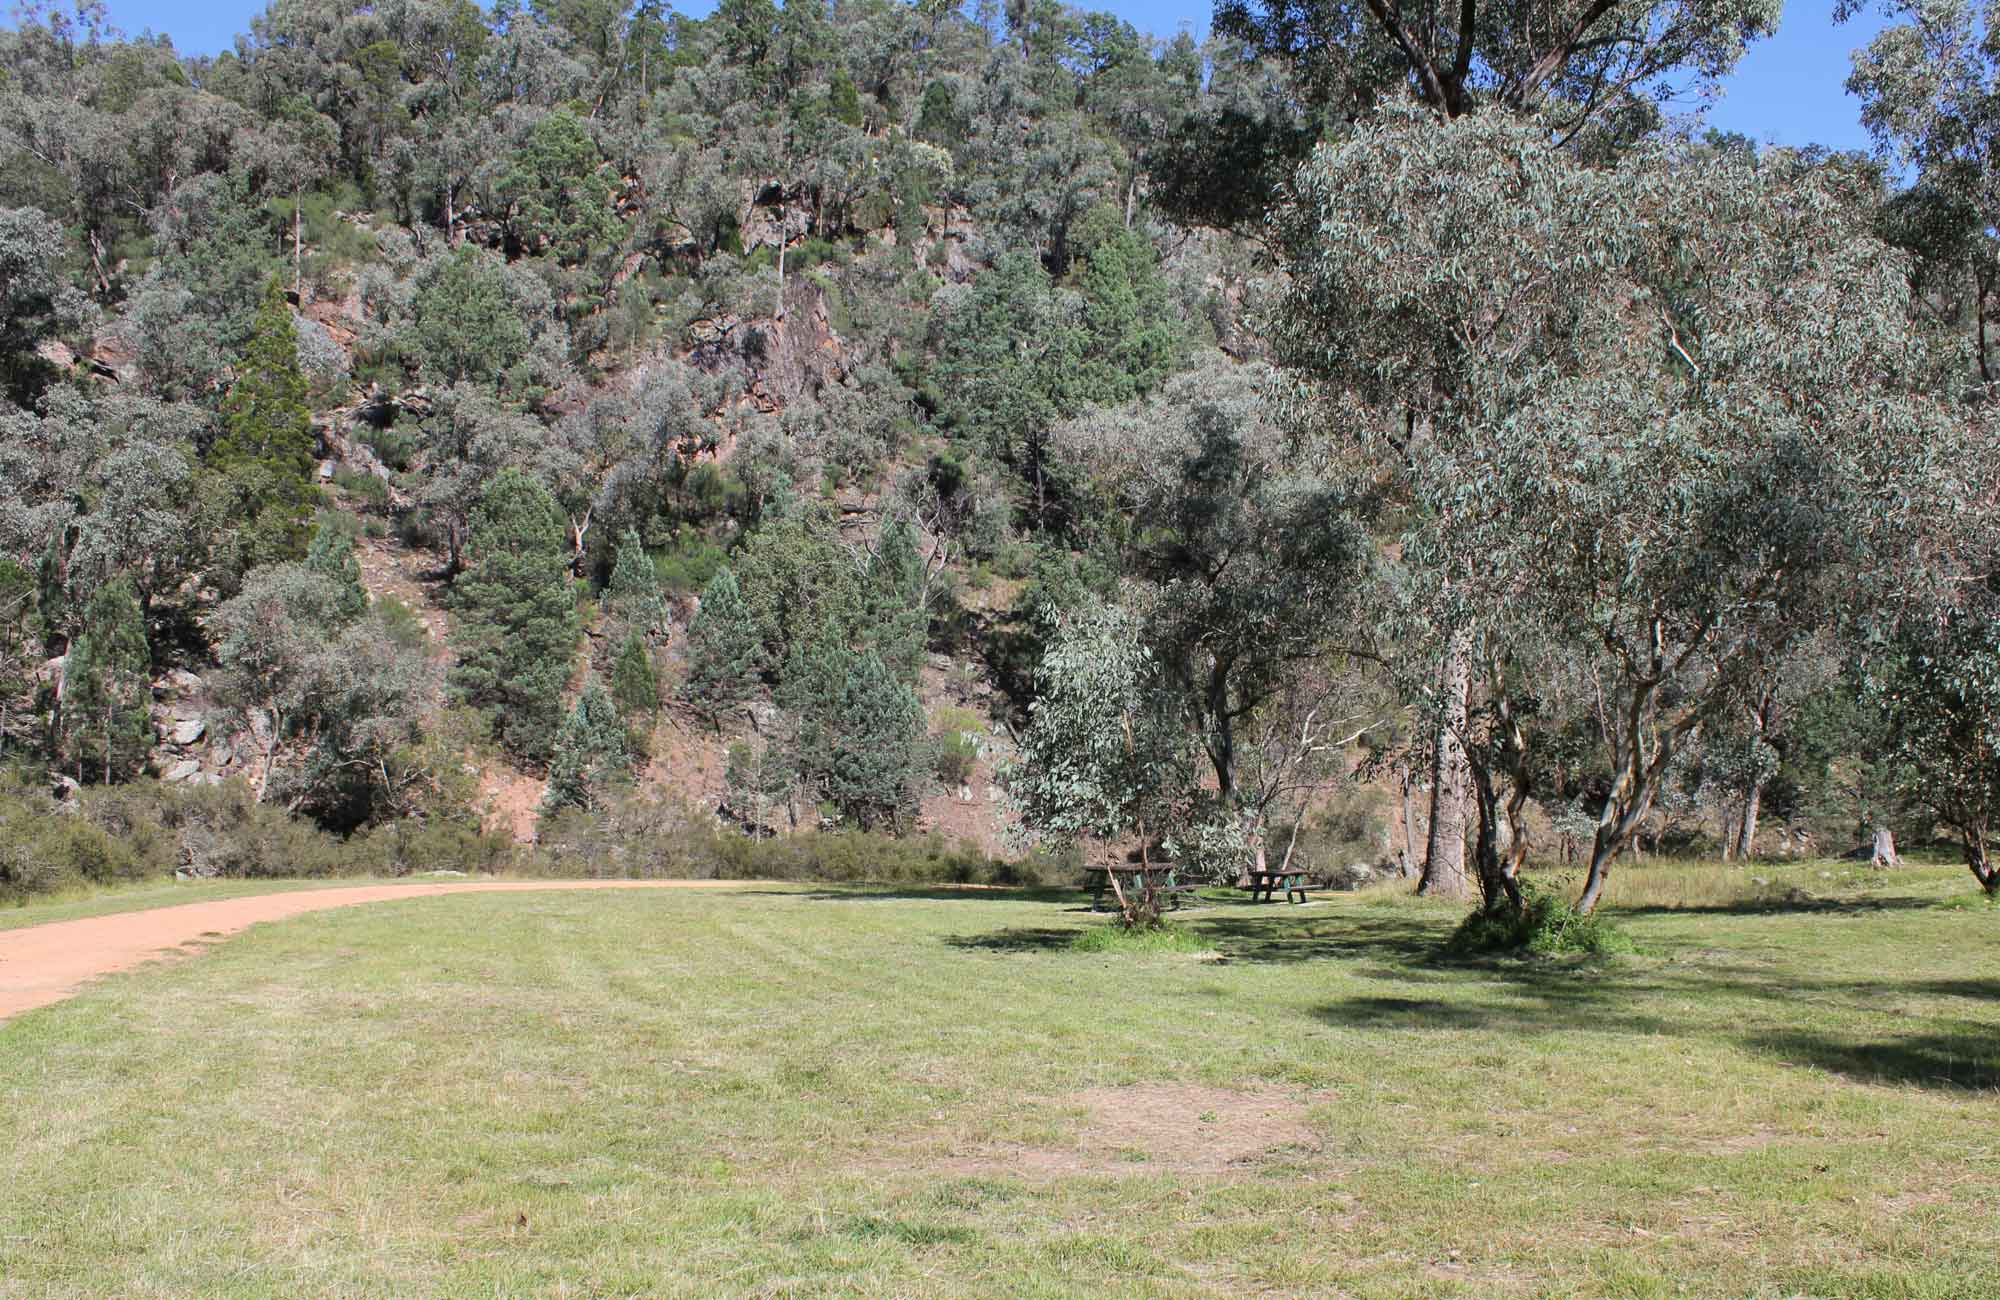 Terrara Creek campground and picnic area, Nangar National Park. Photo: K Edwards/NSW Government